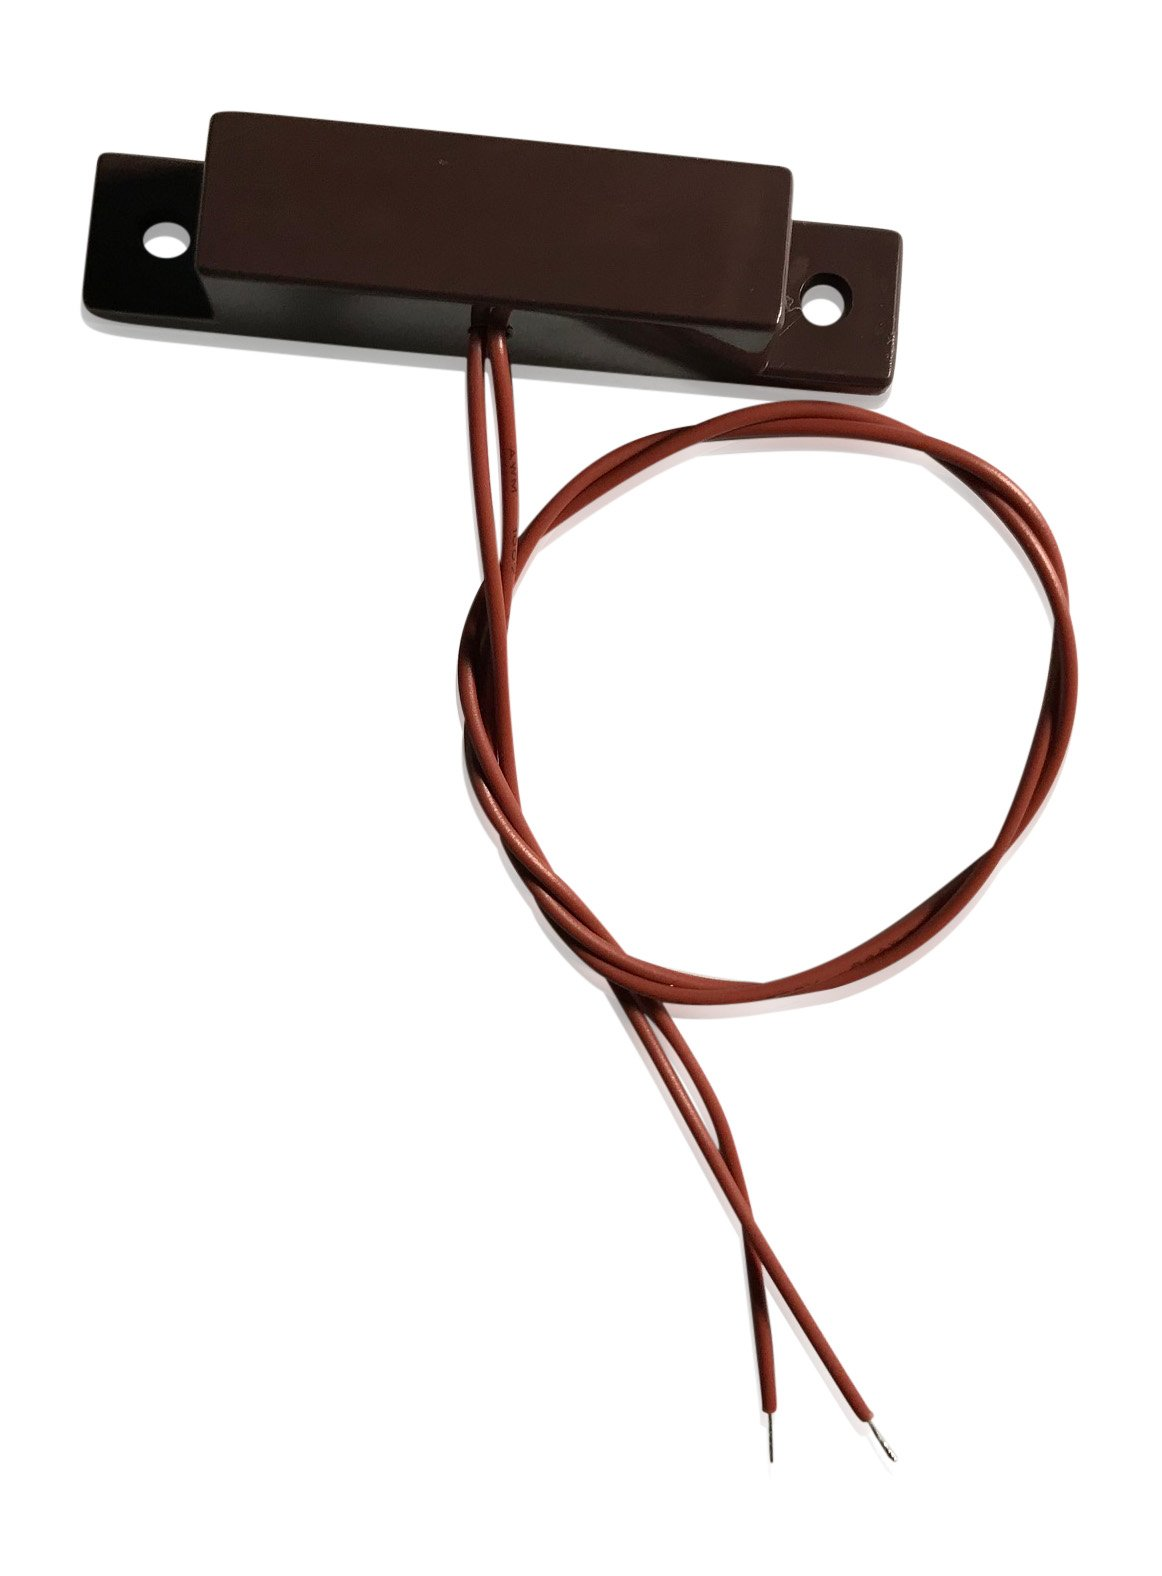 "3 pcs Brown Wired Door Contacts Surface Mount NC Security Alarm Door Window Sensors.These ¾"" Door Contact Position switches (DCS) Work with All Access Control and Burglar Alarm Systems by INTELLid (Image #2)"